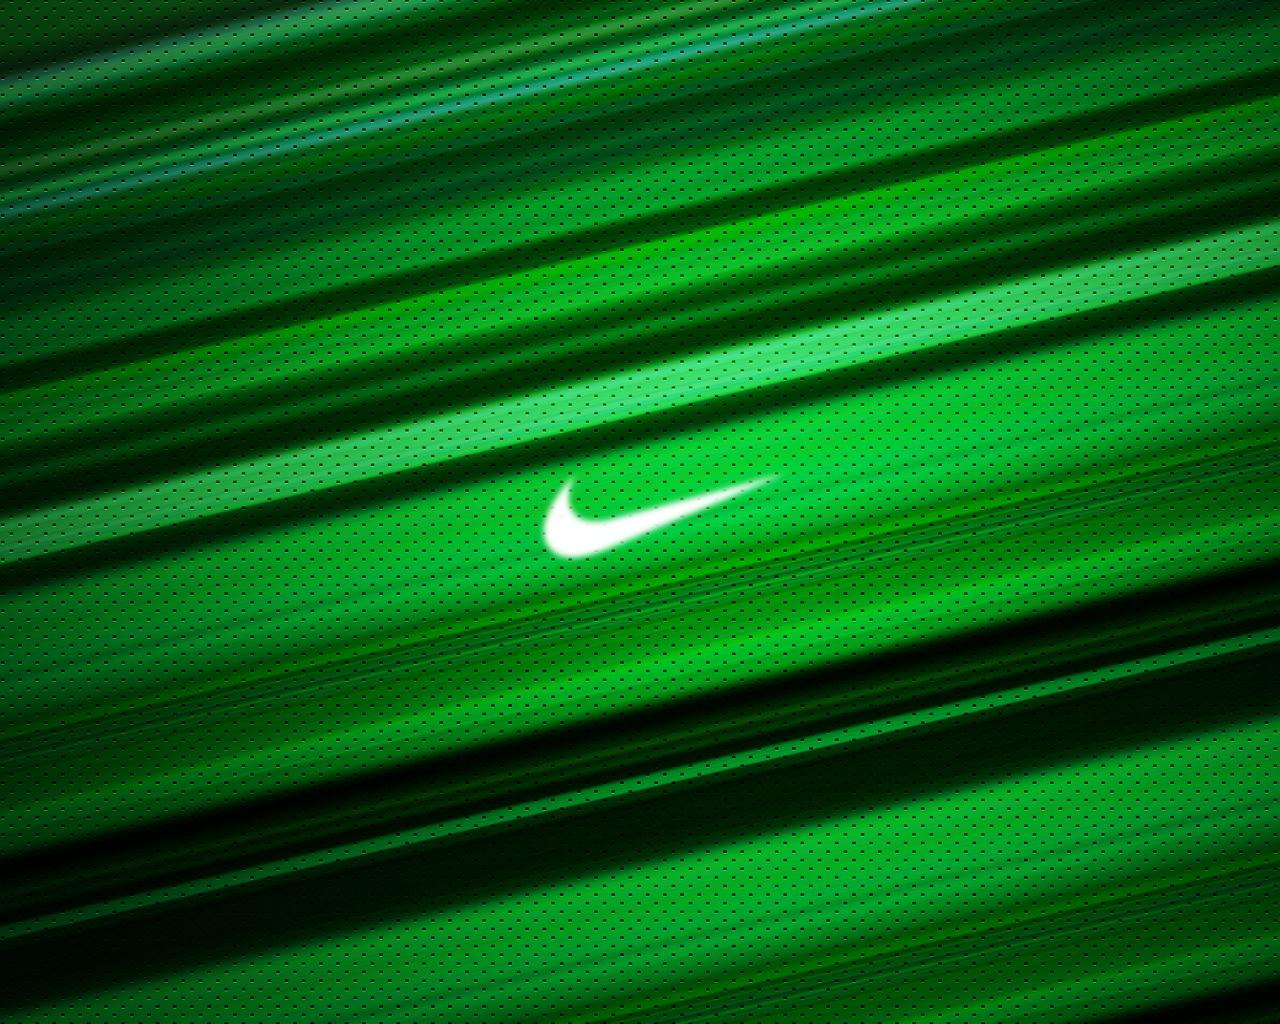 Green Nike Wallpaper 4447 HD Wallpapers pictwalls 1280x1024